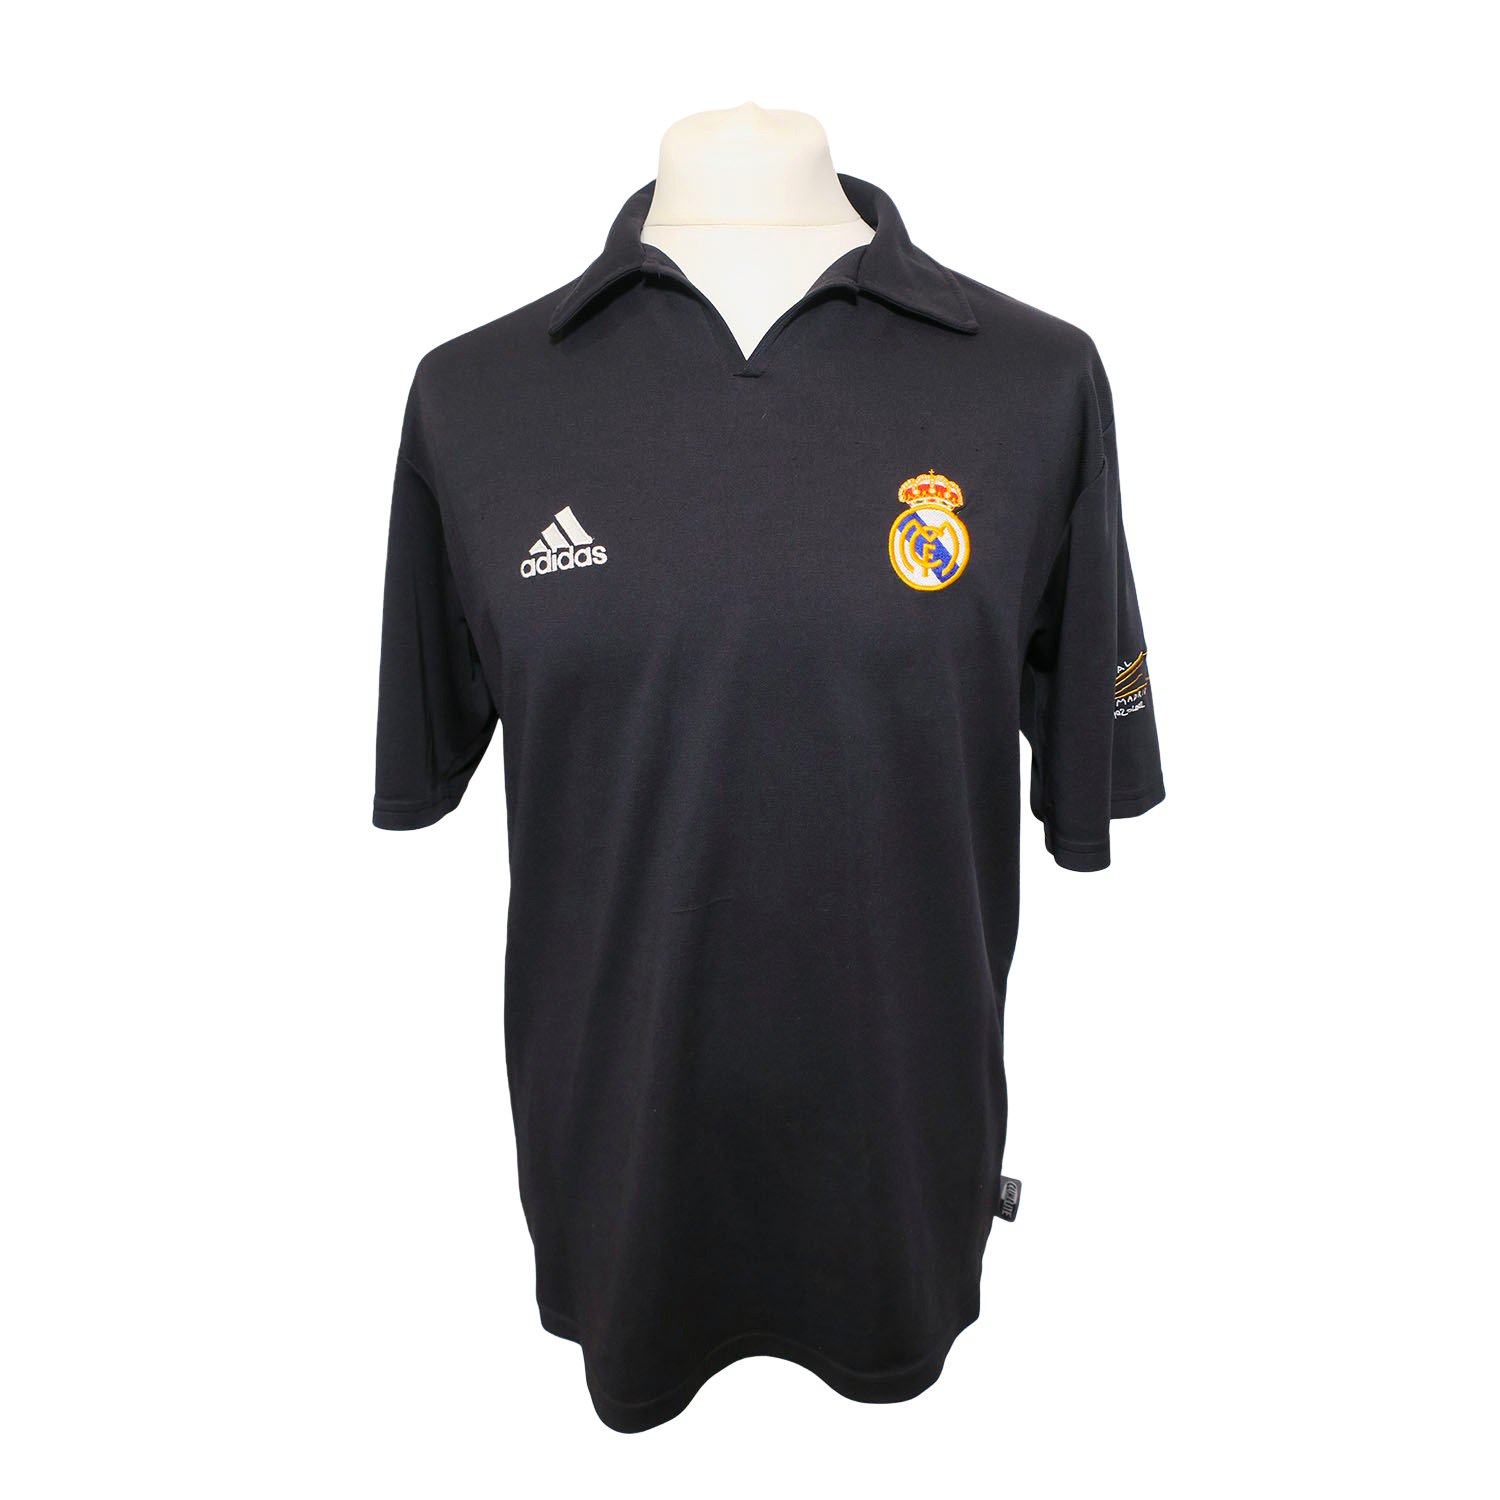 Maillot Real Madrid Centenary édition 2001/02